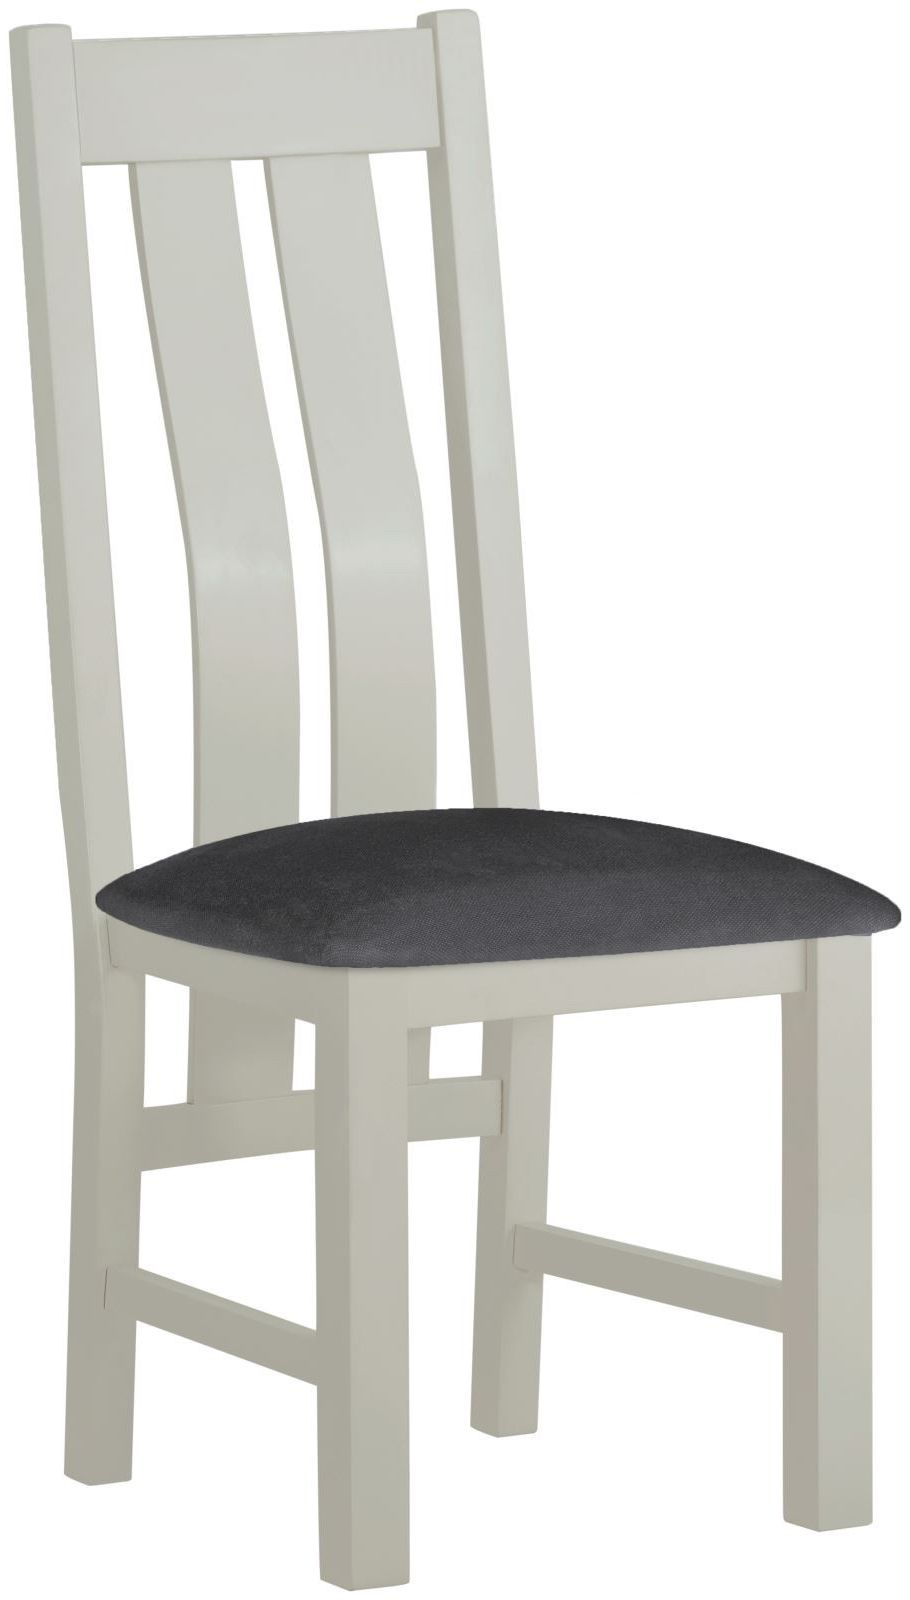 Stratton Stone Dining Chair